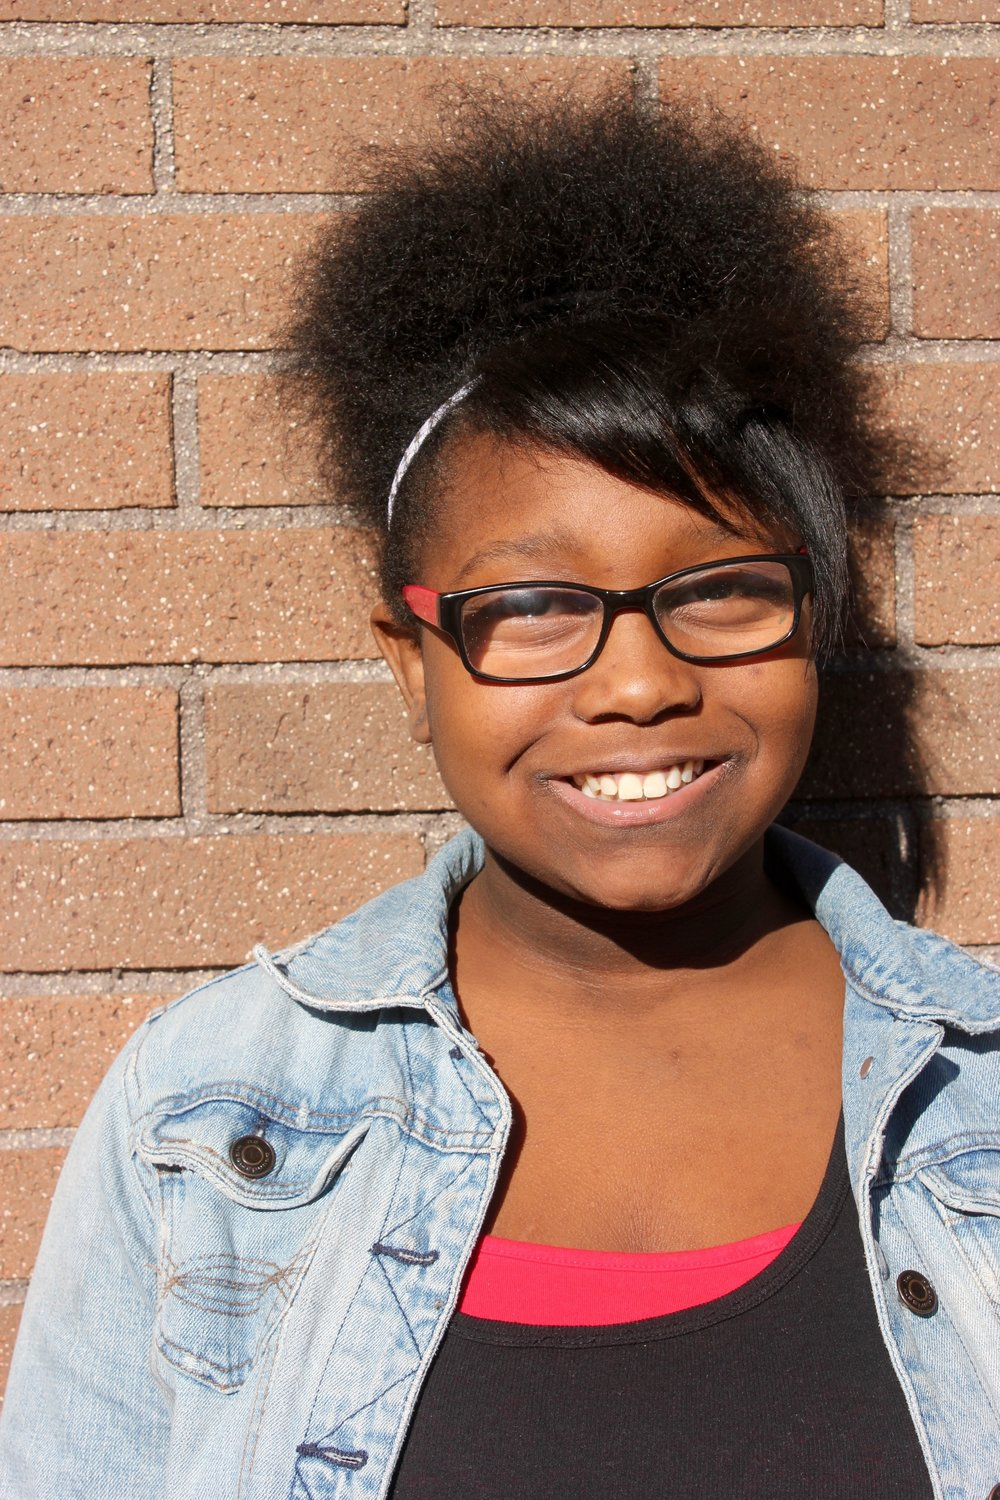 Marijah   Marijah Franklin, 12, attends St. Marcus Lutheran School. She is a youth leader at LVC Rise Up. Marijah started doing poetry, dancing, singing, and acting at the age of 3. She's inspired by her mother, father and grandmother. In the future, she hopes to be a doctor In order to achieve this goal, in her downtime she does a lot of study. Marijah would like to make a change in her world. It starts by every small step she takes.